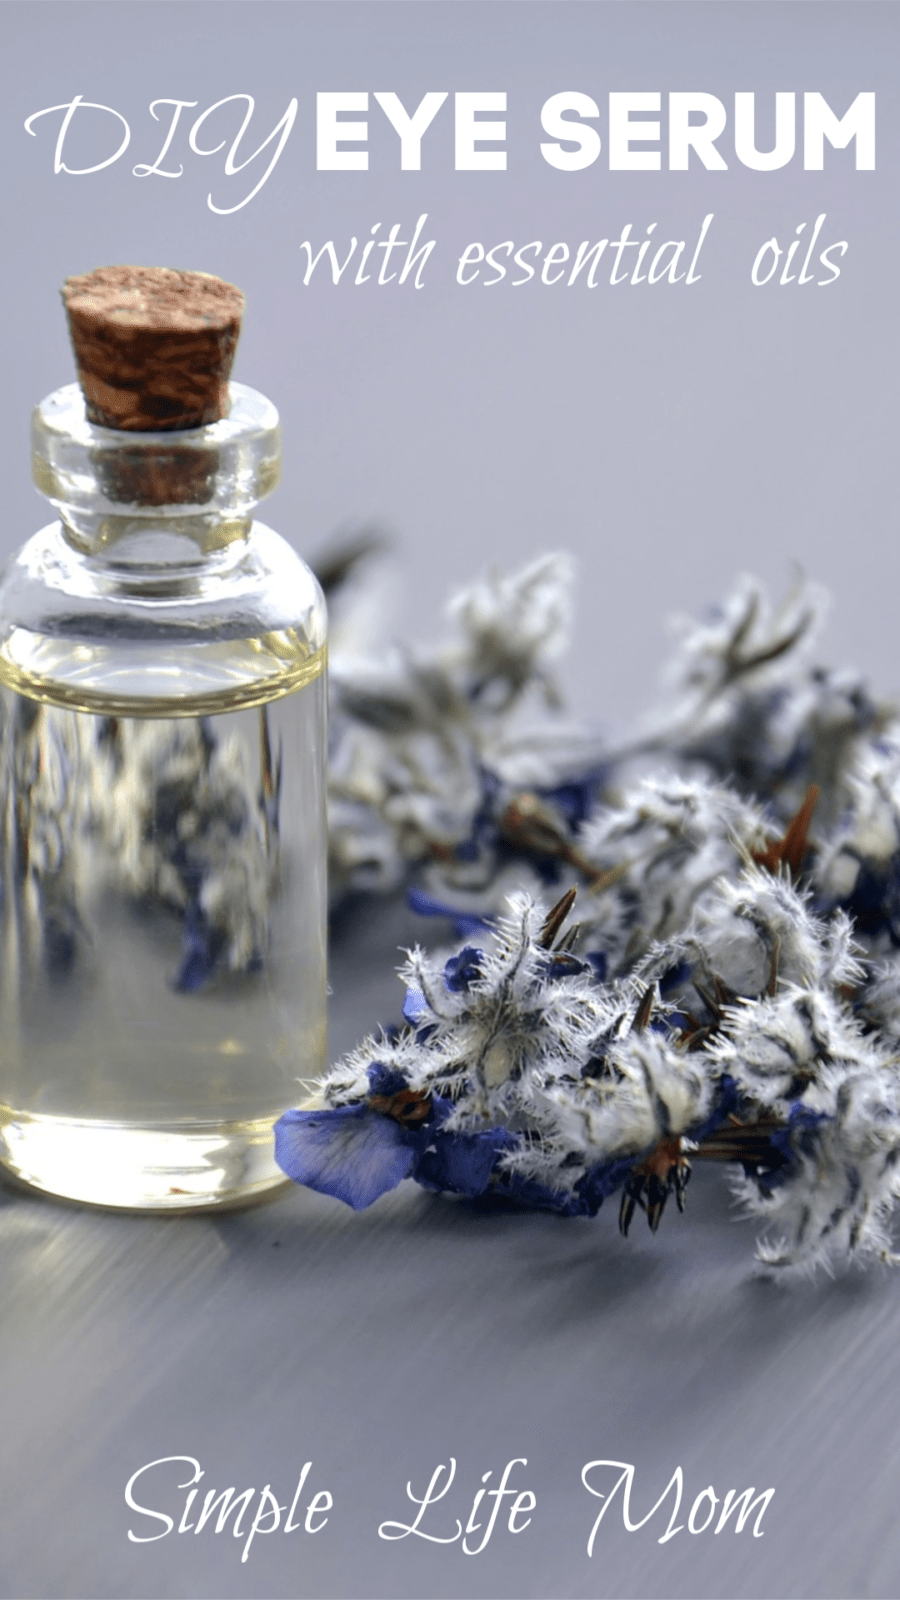 Eye Serum Recipe – Natural with Essential Oils